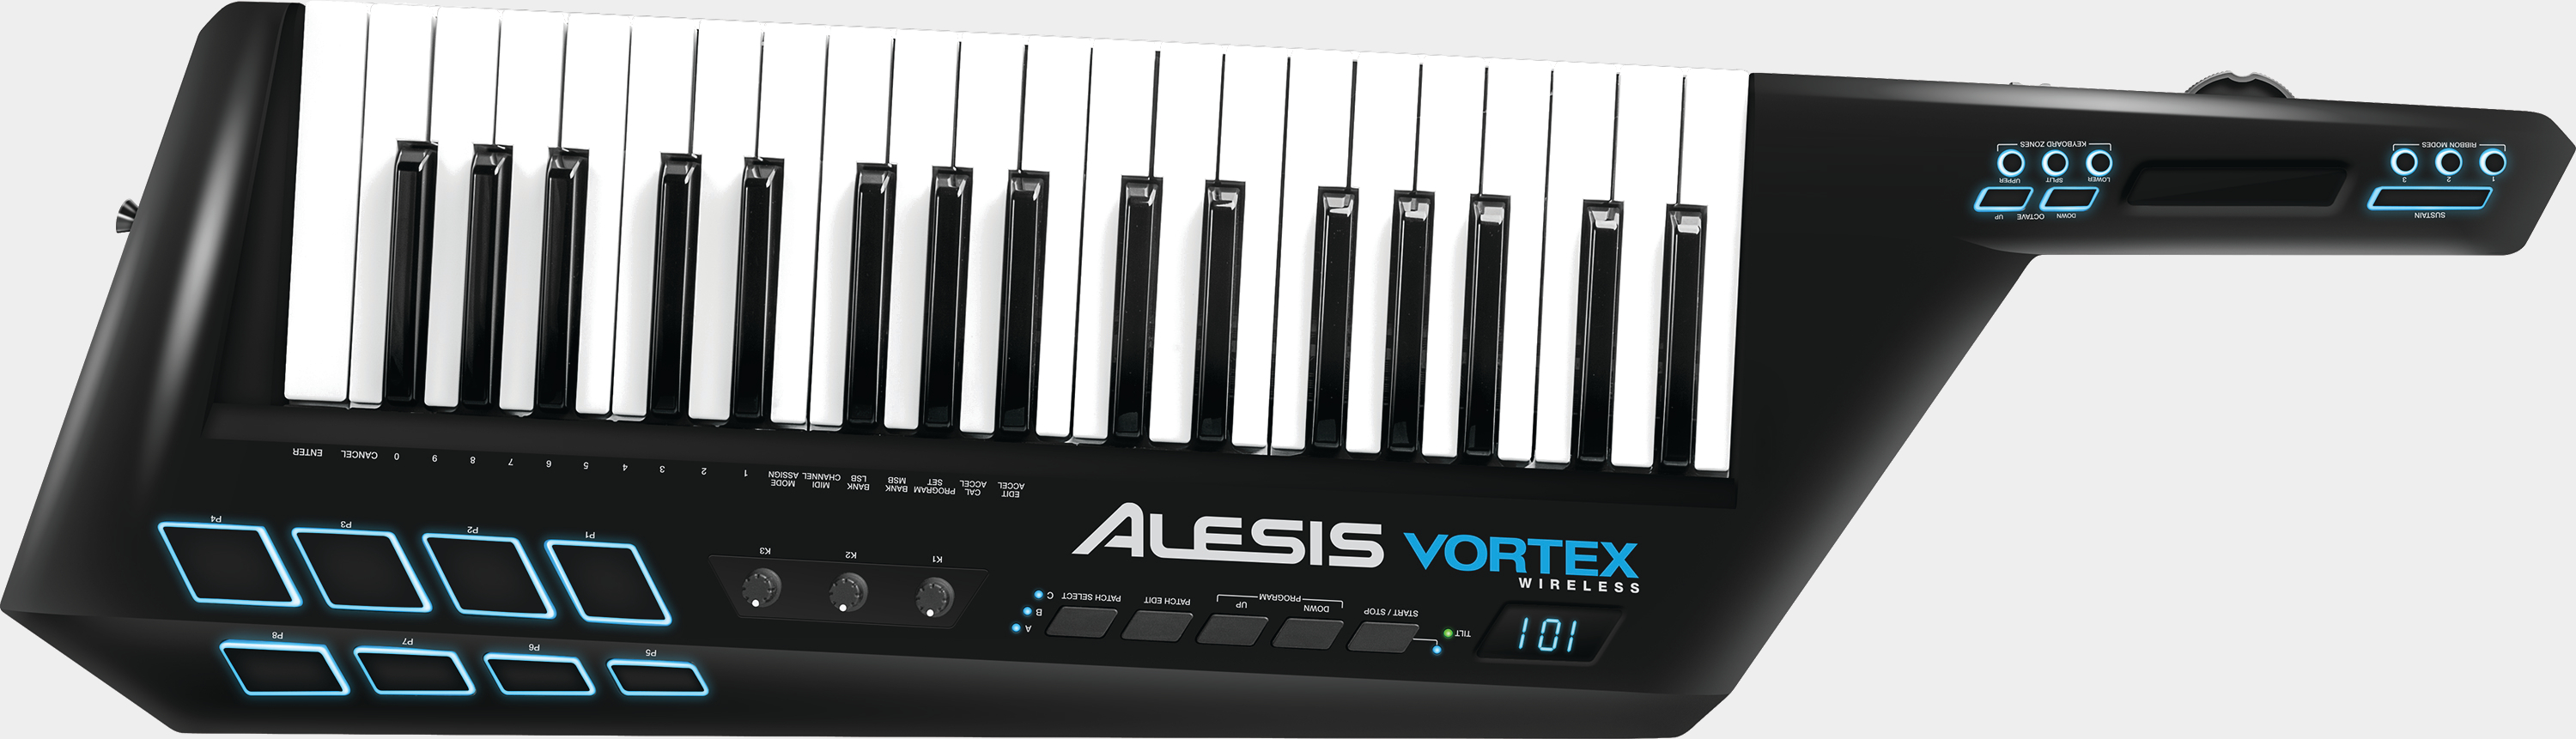 Alesis-Vortex-Wireless